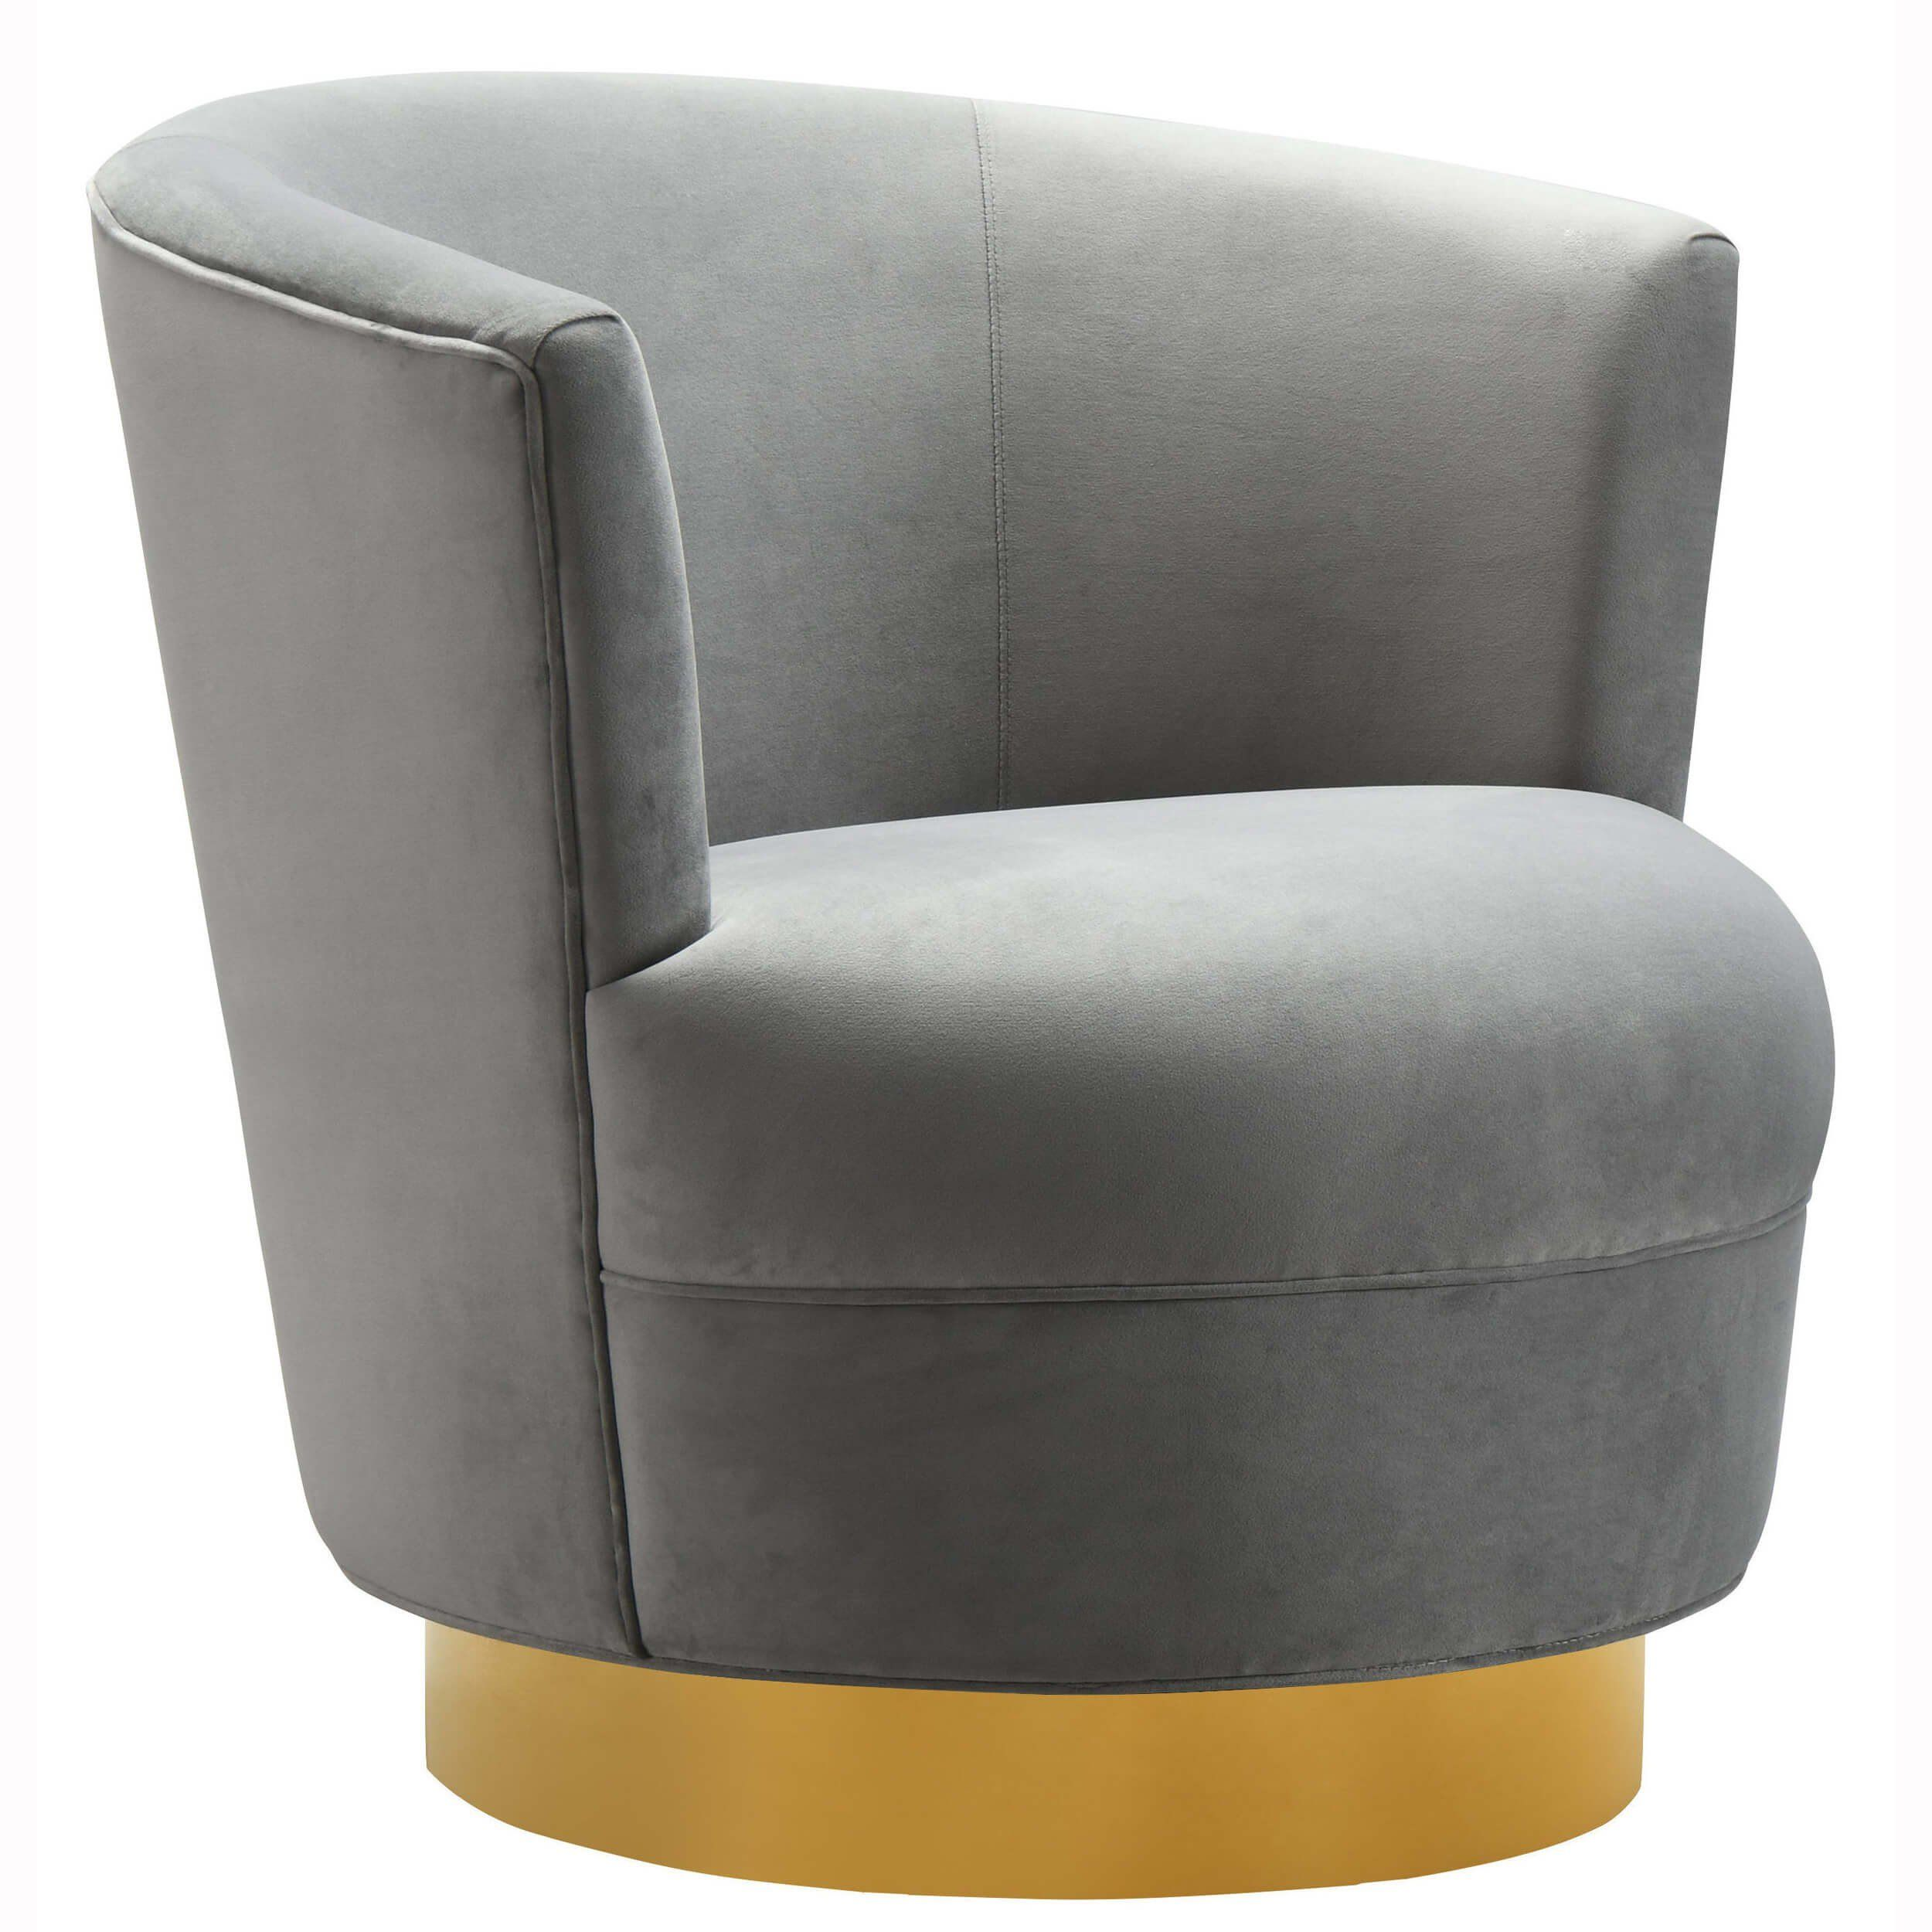 Swivel Tub Chair Norah Swivel Chair Grey In 2019 Furniture Swivel Barrel Chair